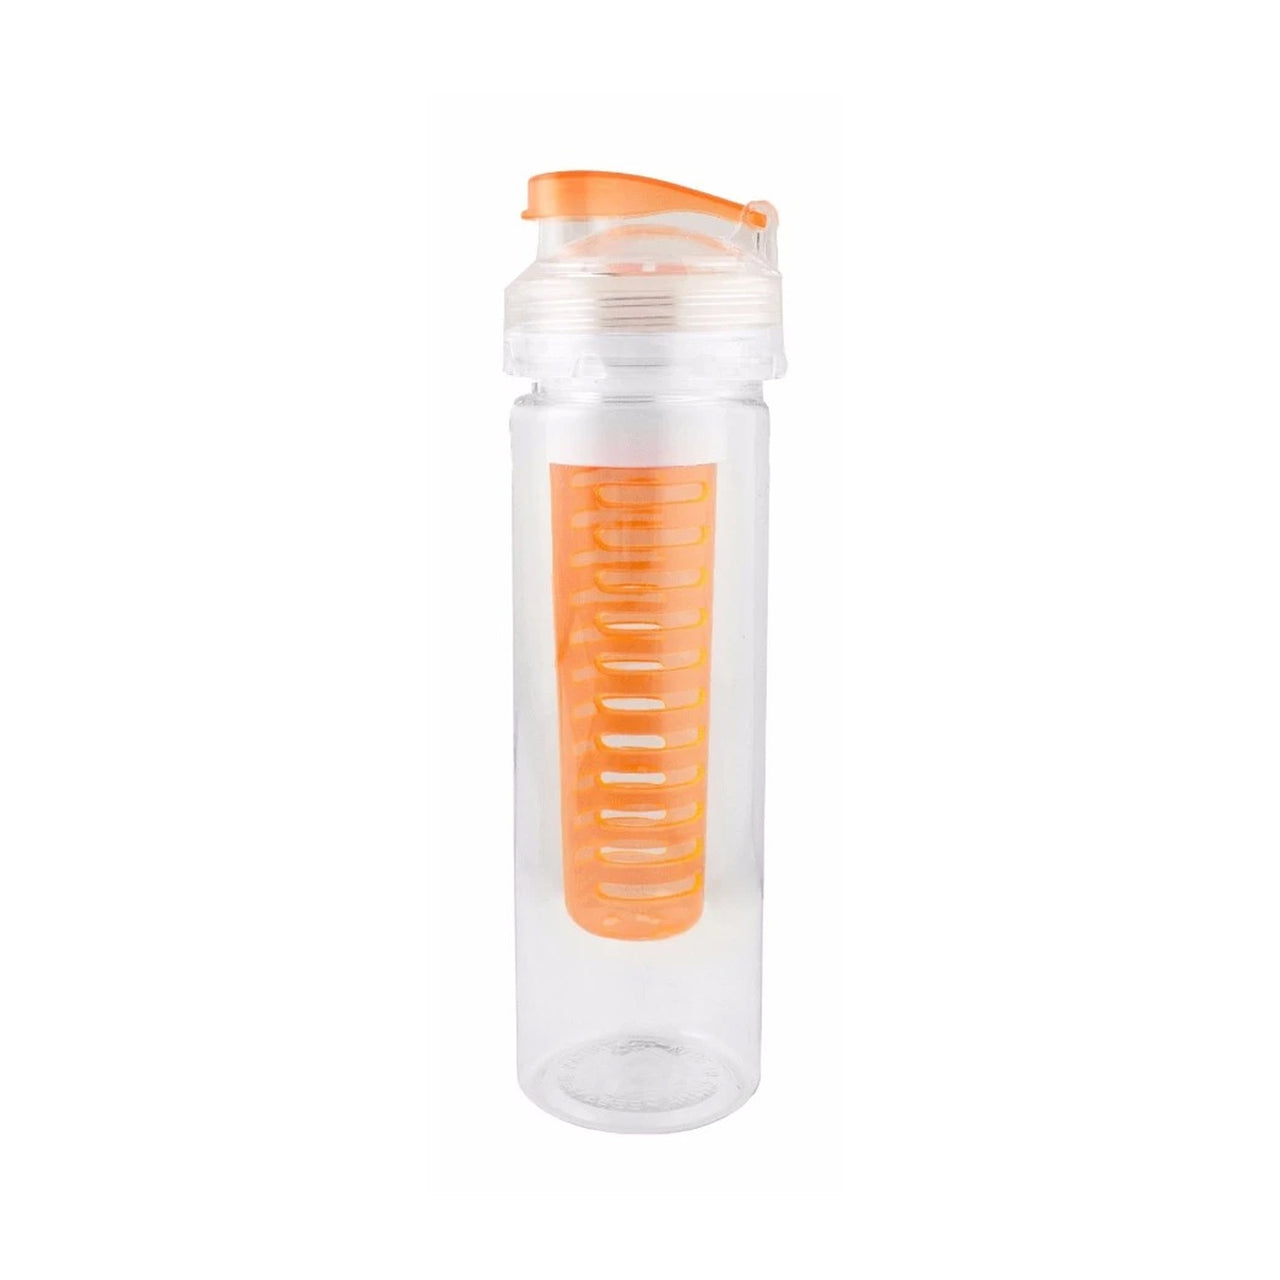 700ml Infuser Sipper Water Bottle - Orange - EMARTBUY